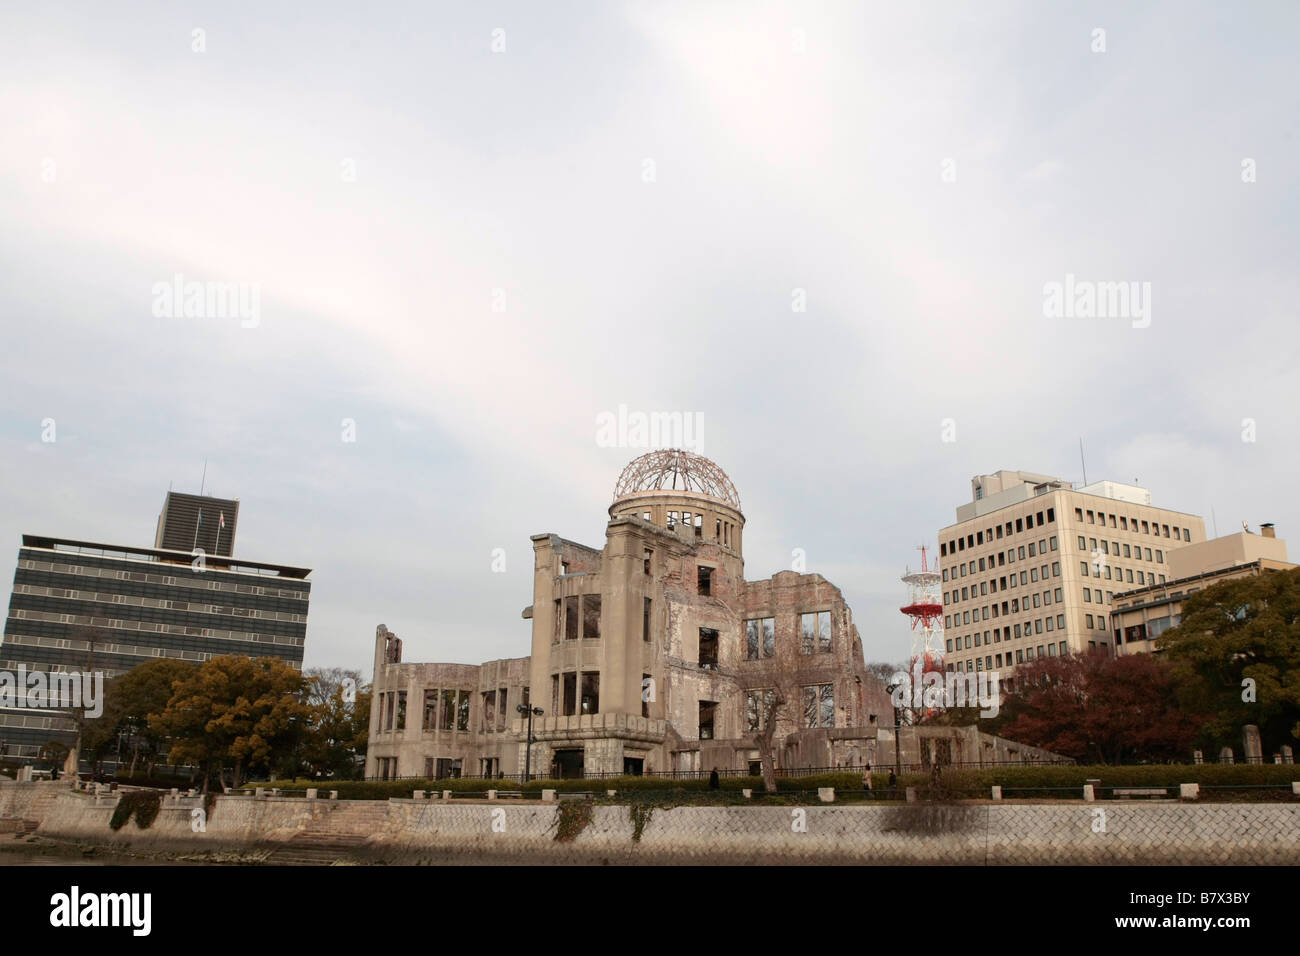 General view of the A-Bomb dome in Hiroshima, Japan. - Stock Image